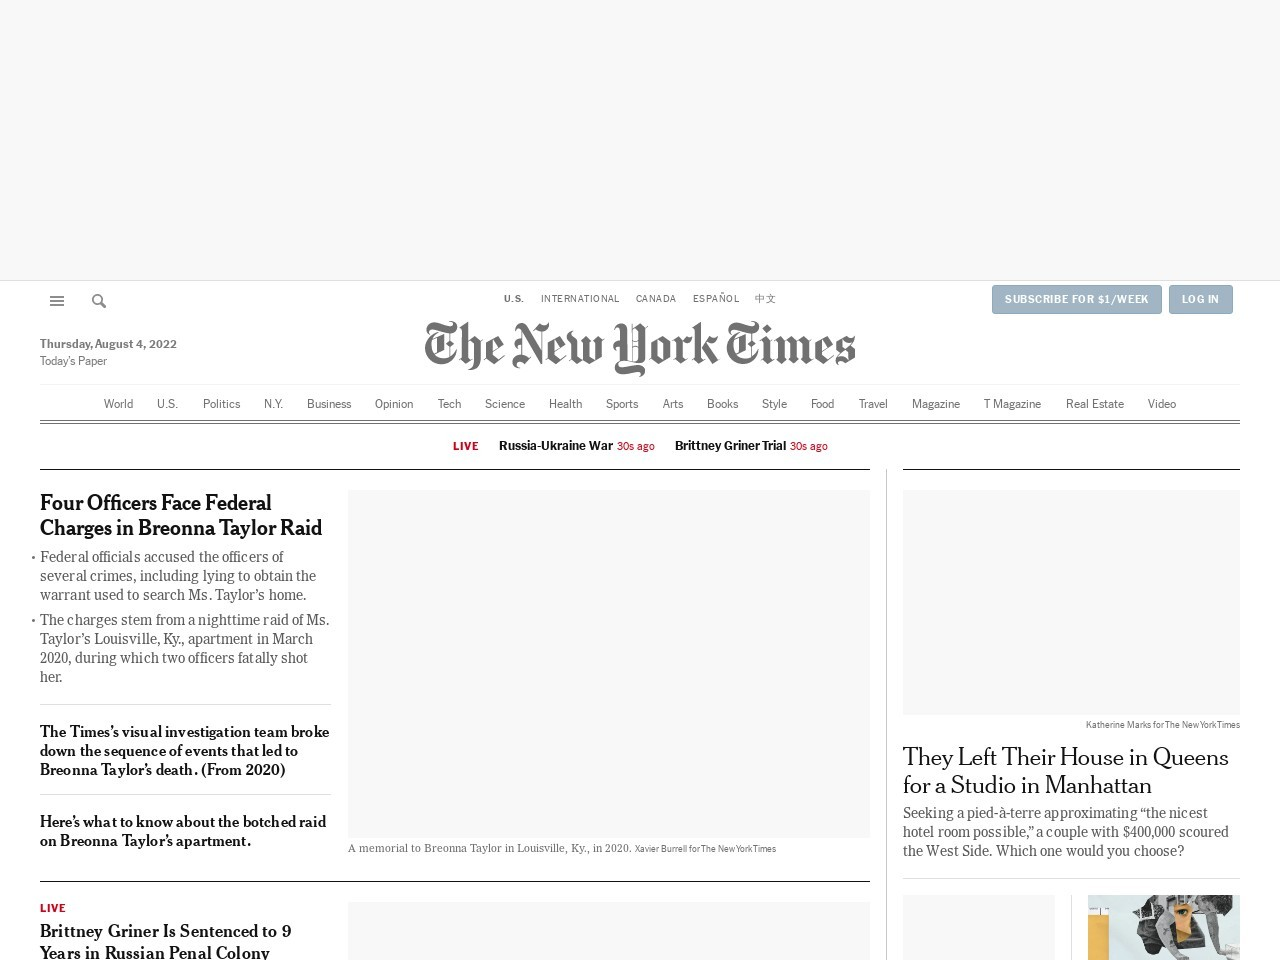 https://www.nytimes.com/2018/06/27/technology/personaltech/newsroom-technology-evolved-40-years.html